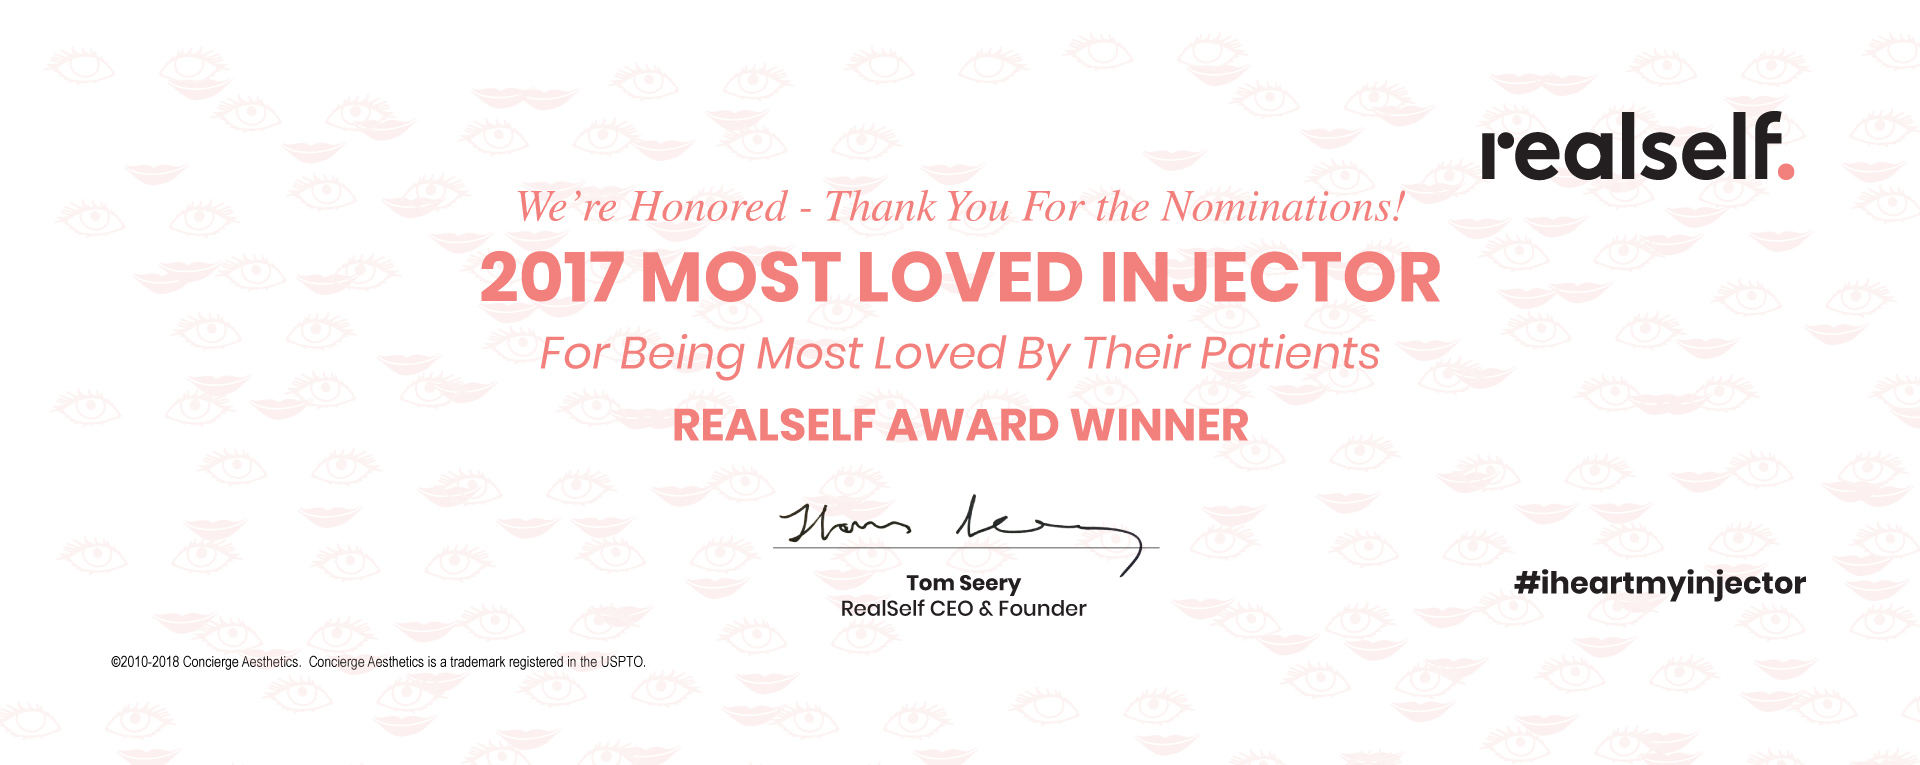 Concierge Aesthetics - RealSelf Most Loved Injector Award Winner